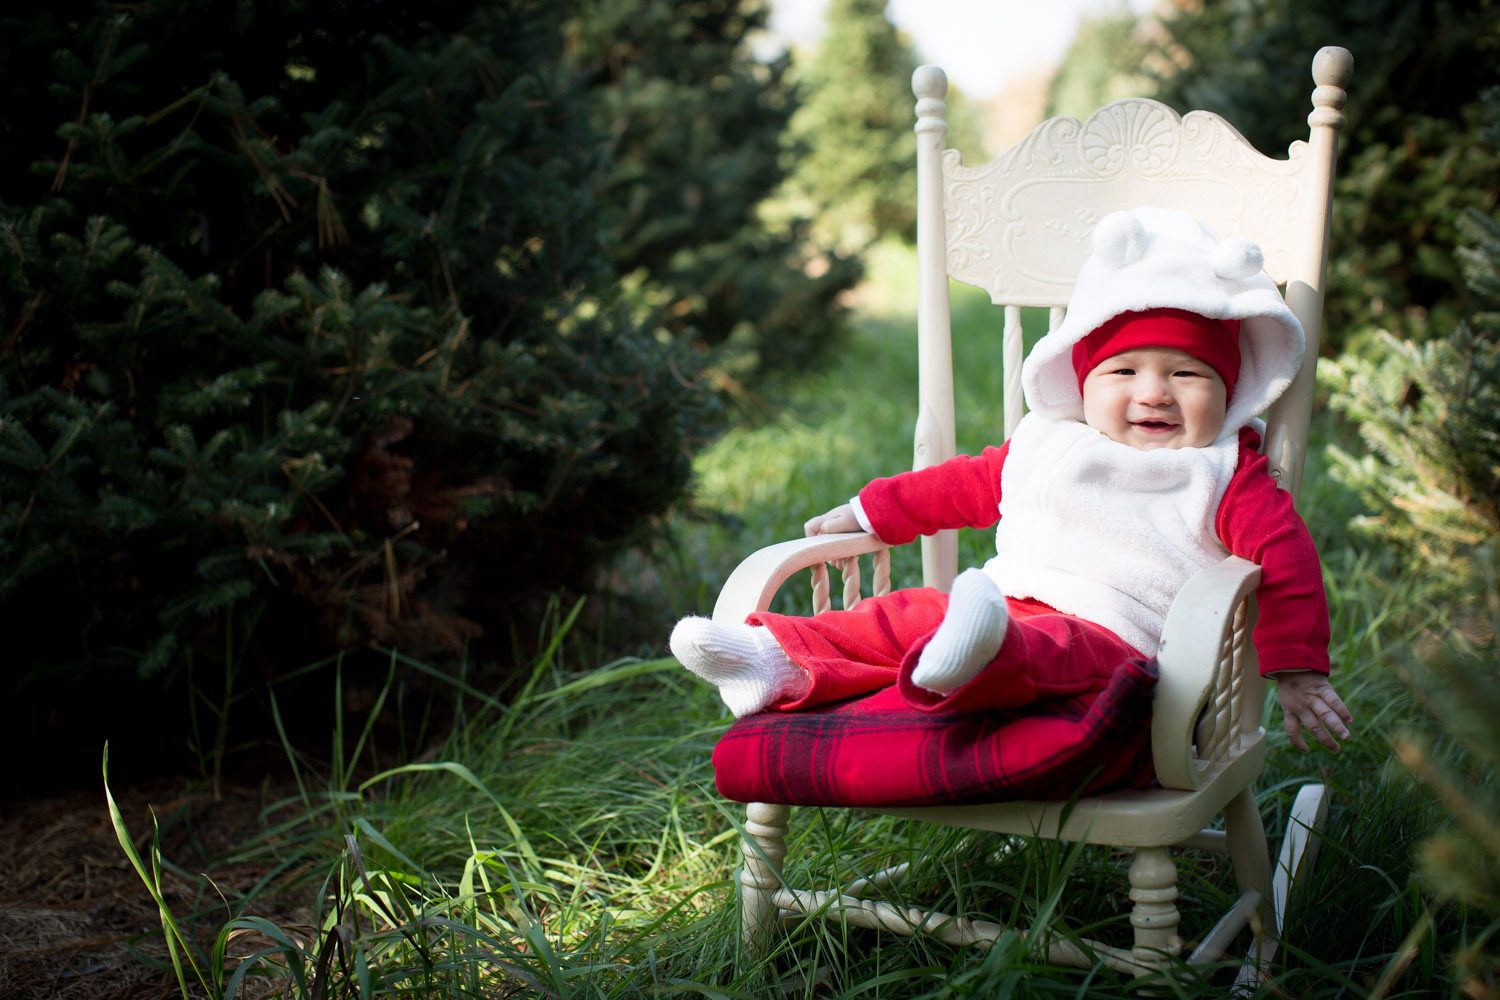 01-hansen-tree-farm-christmas-mini-sessions-minnesota-family-photographer-red-baby-outfit-warm-festive-mahonen-photography.jpg